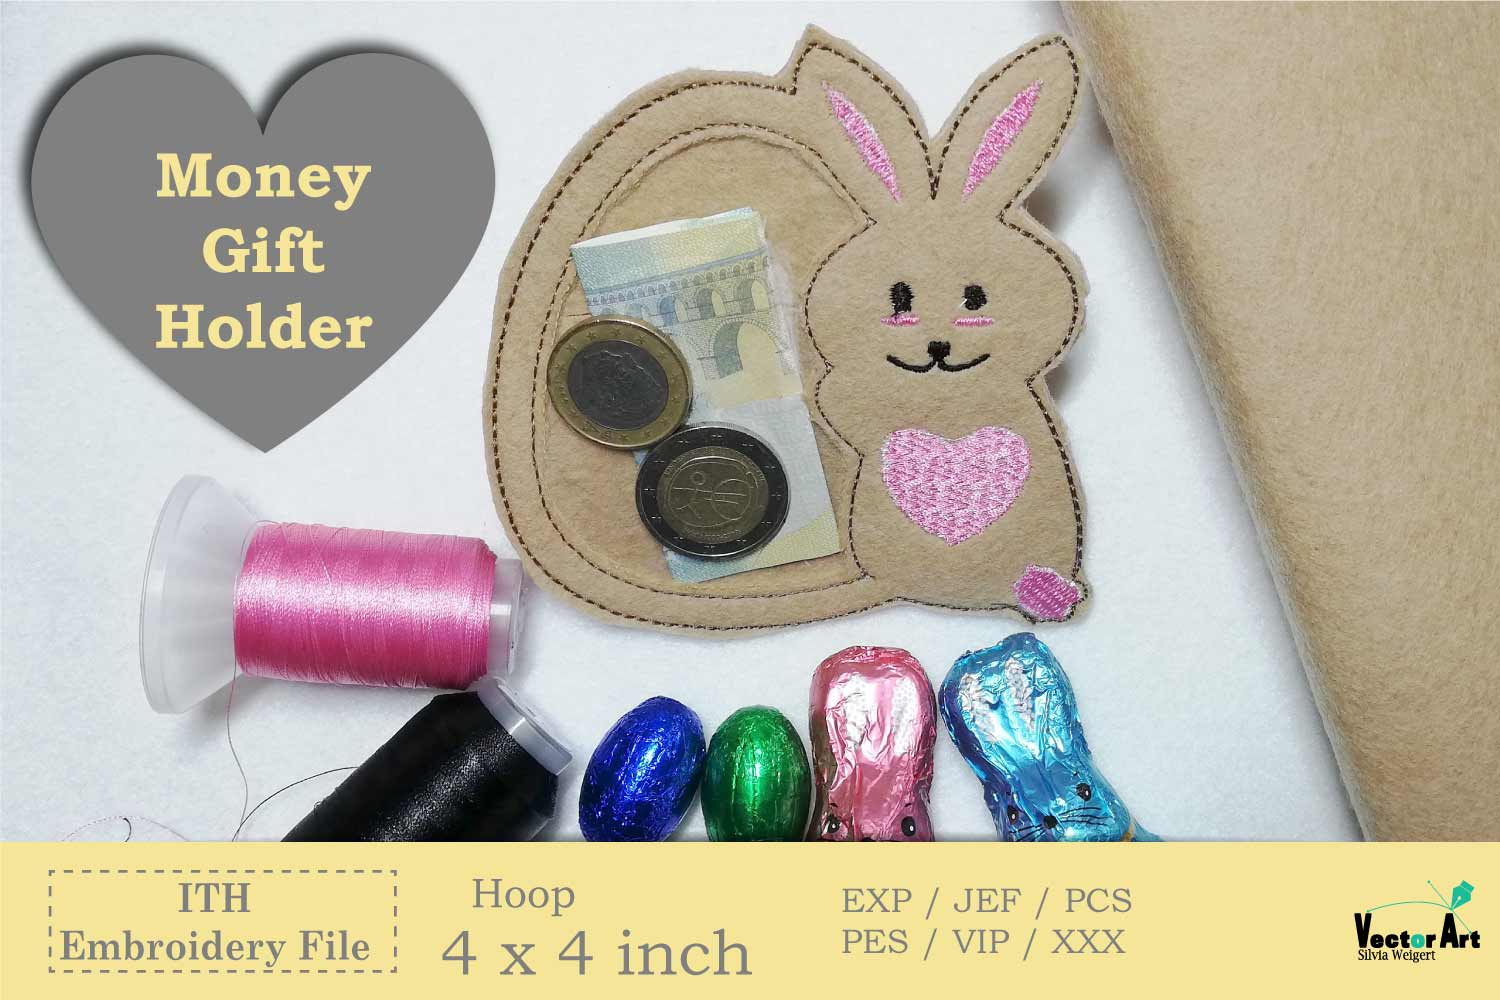 ITH - Bunny with Egg - Great Idea for Money Gifts example image 2